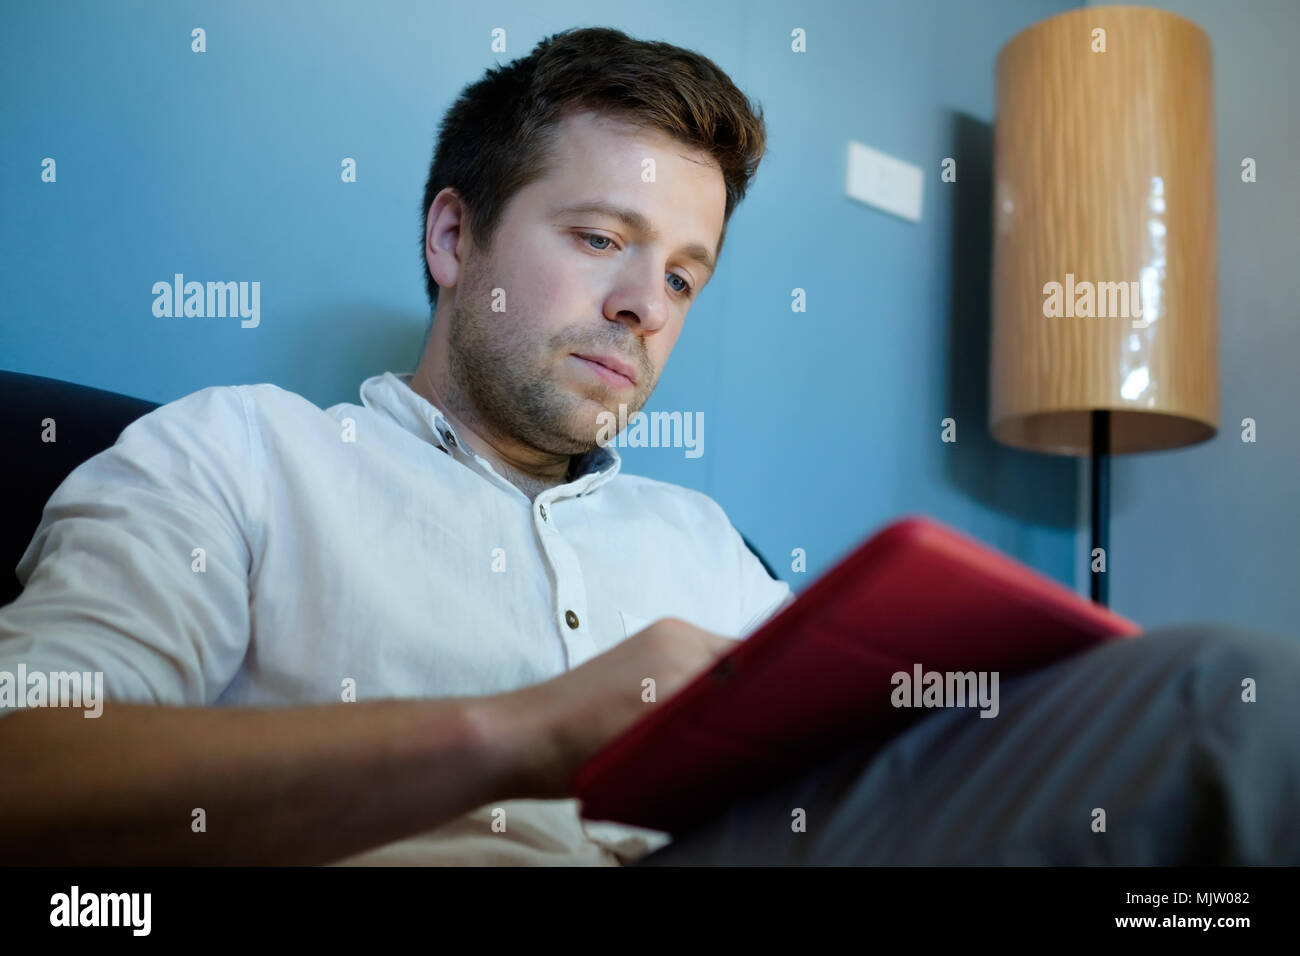 Handsome caucasian man in white shirt using his tablet sitting on a couch Stock Photo